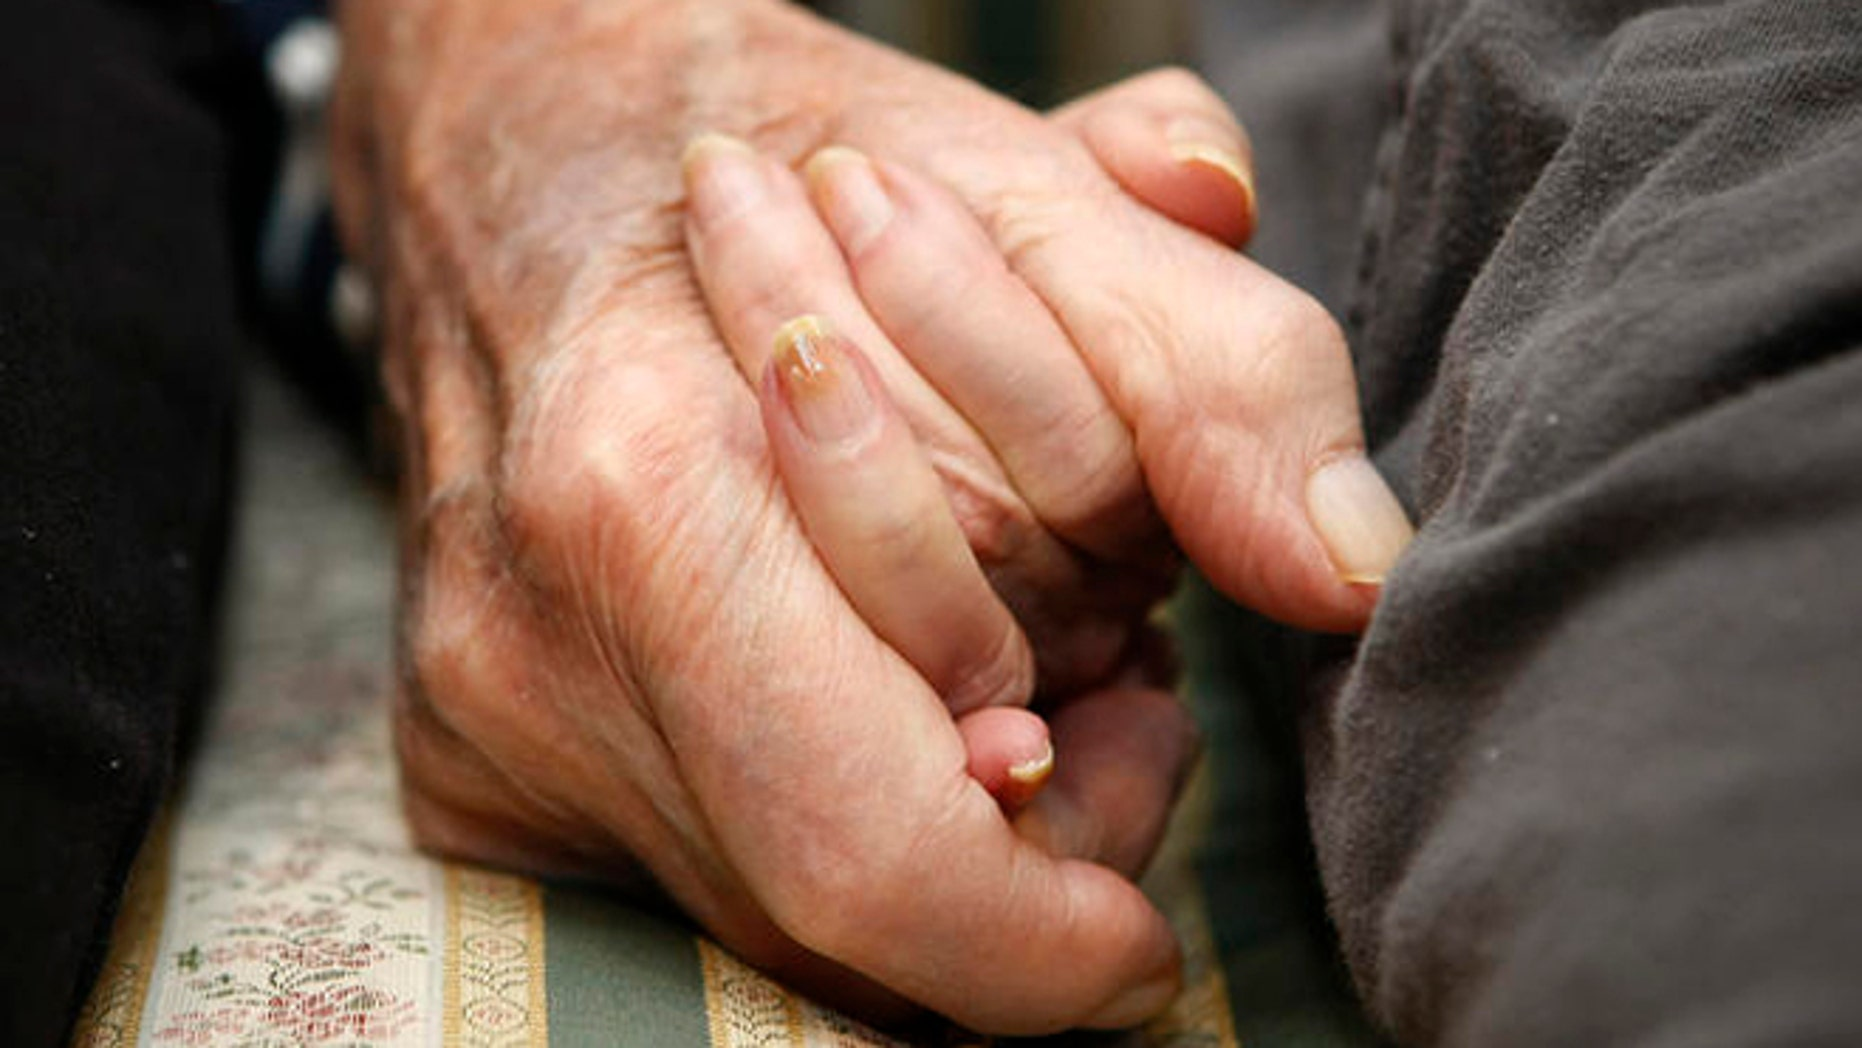 **HOLD FOR RELEASE UNTIL AT 4 P.M. EST MONDAY. MARCH 10, 2008. THIS STORY MAY NOT BE POSTED ONLINE, BROADCAST OR PUBLISHED BEFORE 4 P.M. EST.** Jeannette Zeltzer, 81 and her new boyfriend Max Rakov, 92, hold hands while sitting on a couch at the assisted living facility where they live on Saturday, March 8, 2008 in Newton, Mass.  Zeltzer recently lost her husband and now spends time holding hands with Rakov who also suffers from Alzheimer's.   (AP Photo/Greg M. Cooper)